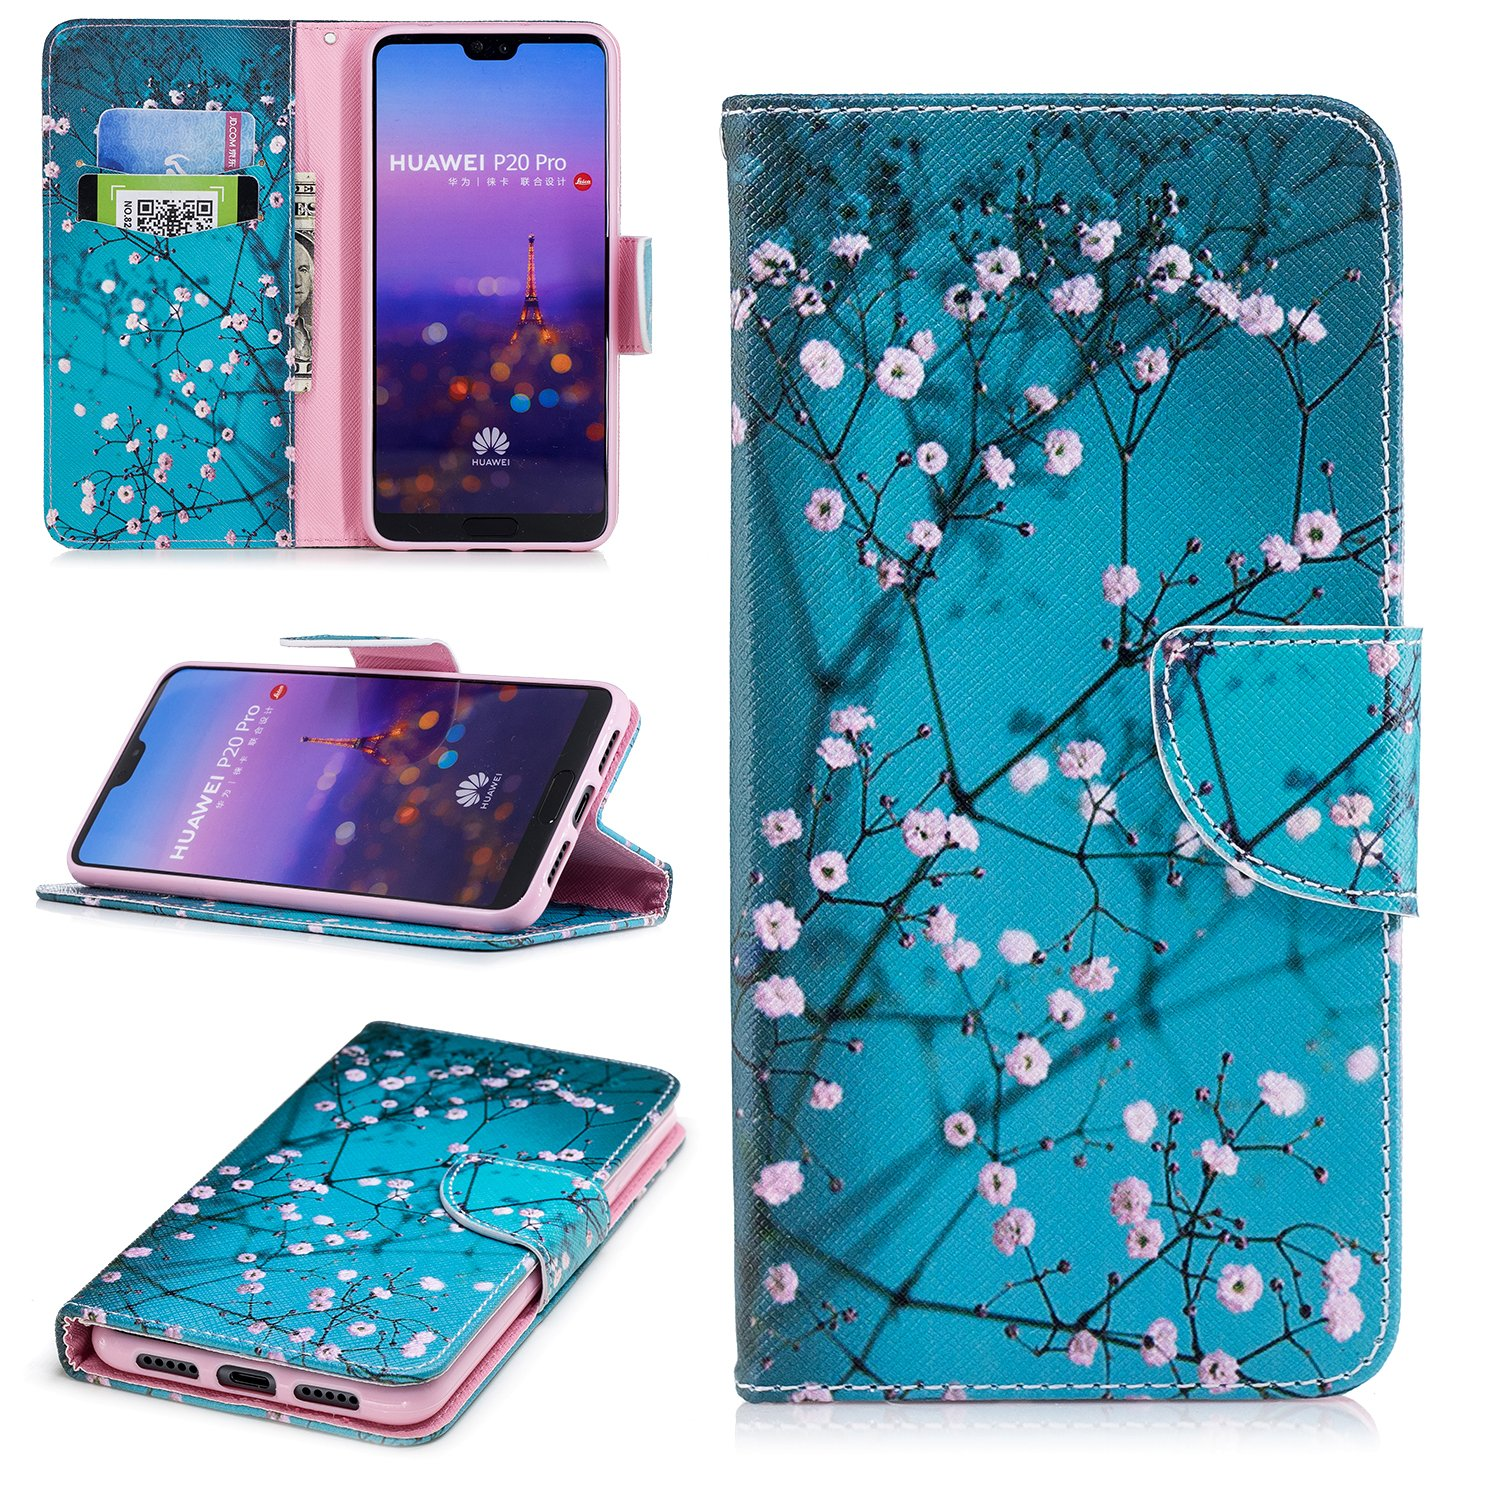 Huawei P20 Pro Wallet case Leather, Luckyandery with Card Slots Kickstand Shockproof PU Leather Wallet Flip Case for Huawei P20 Pro Smartphone #01